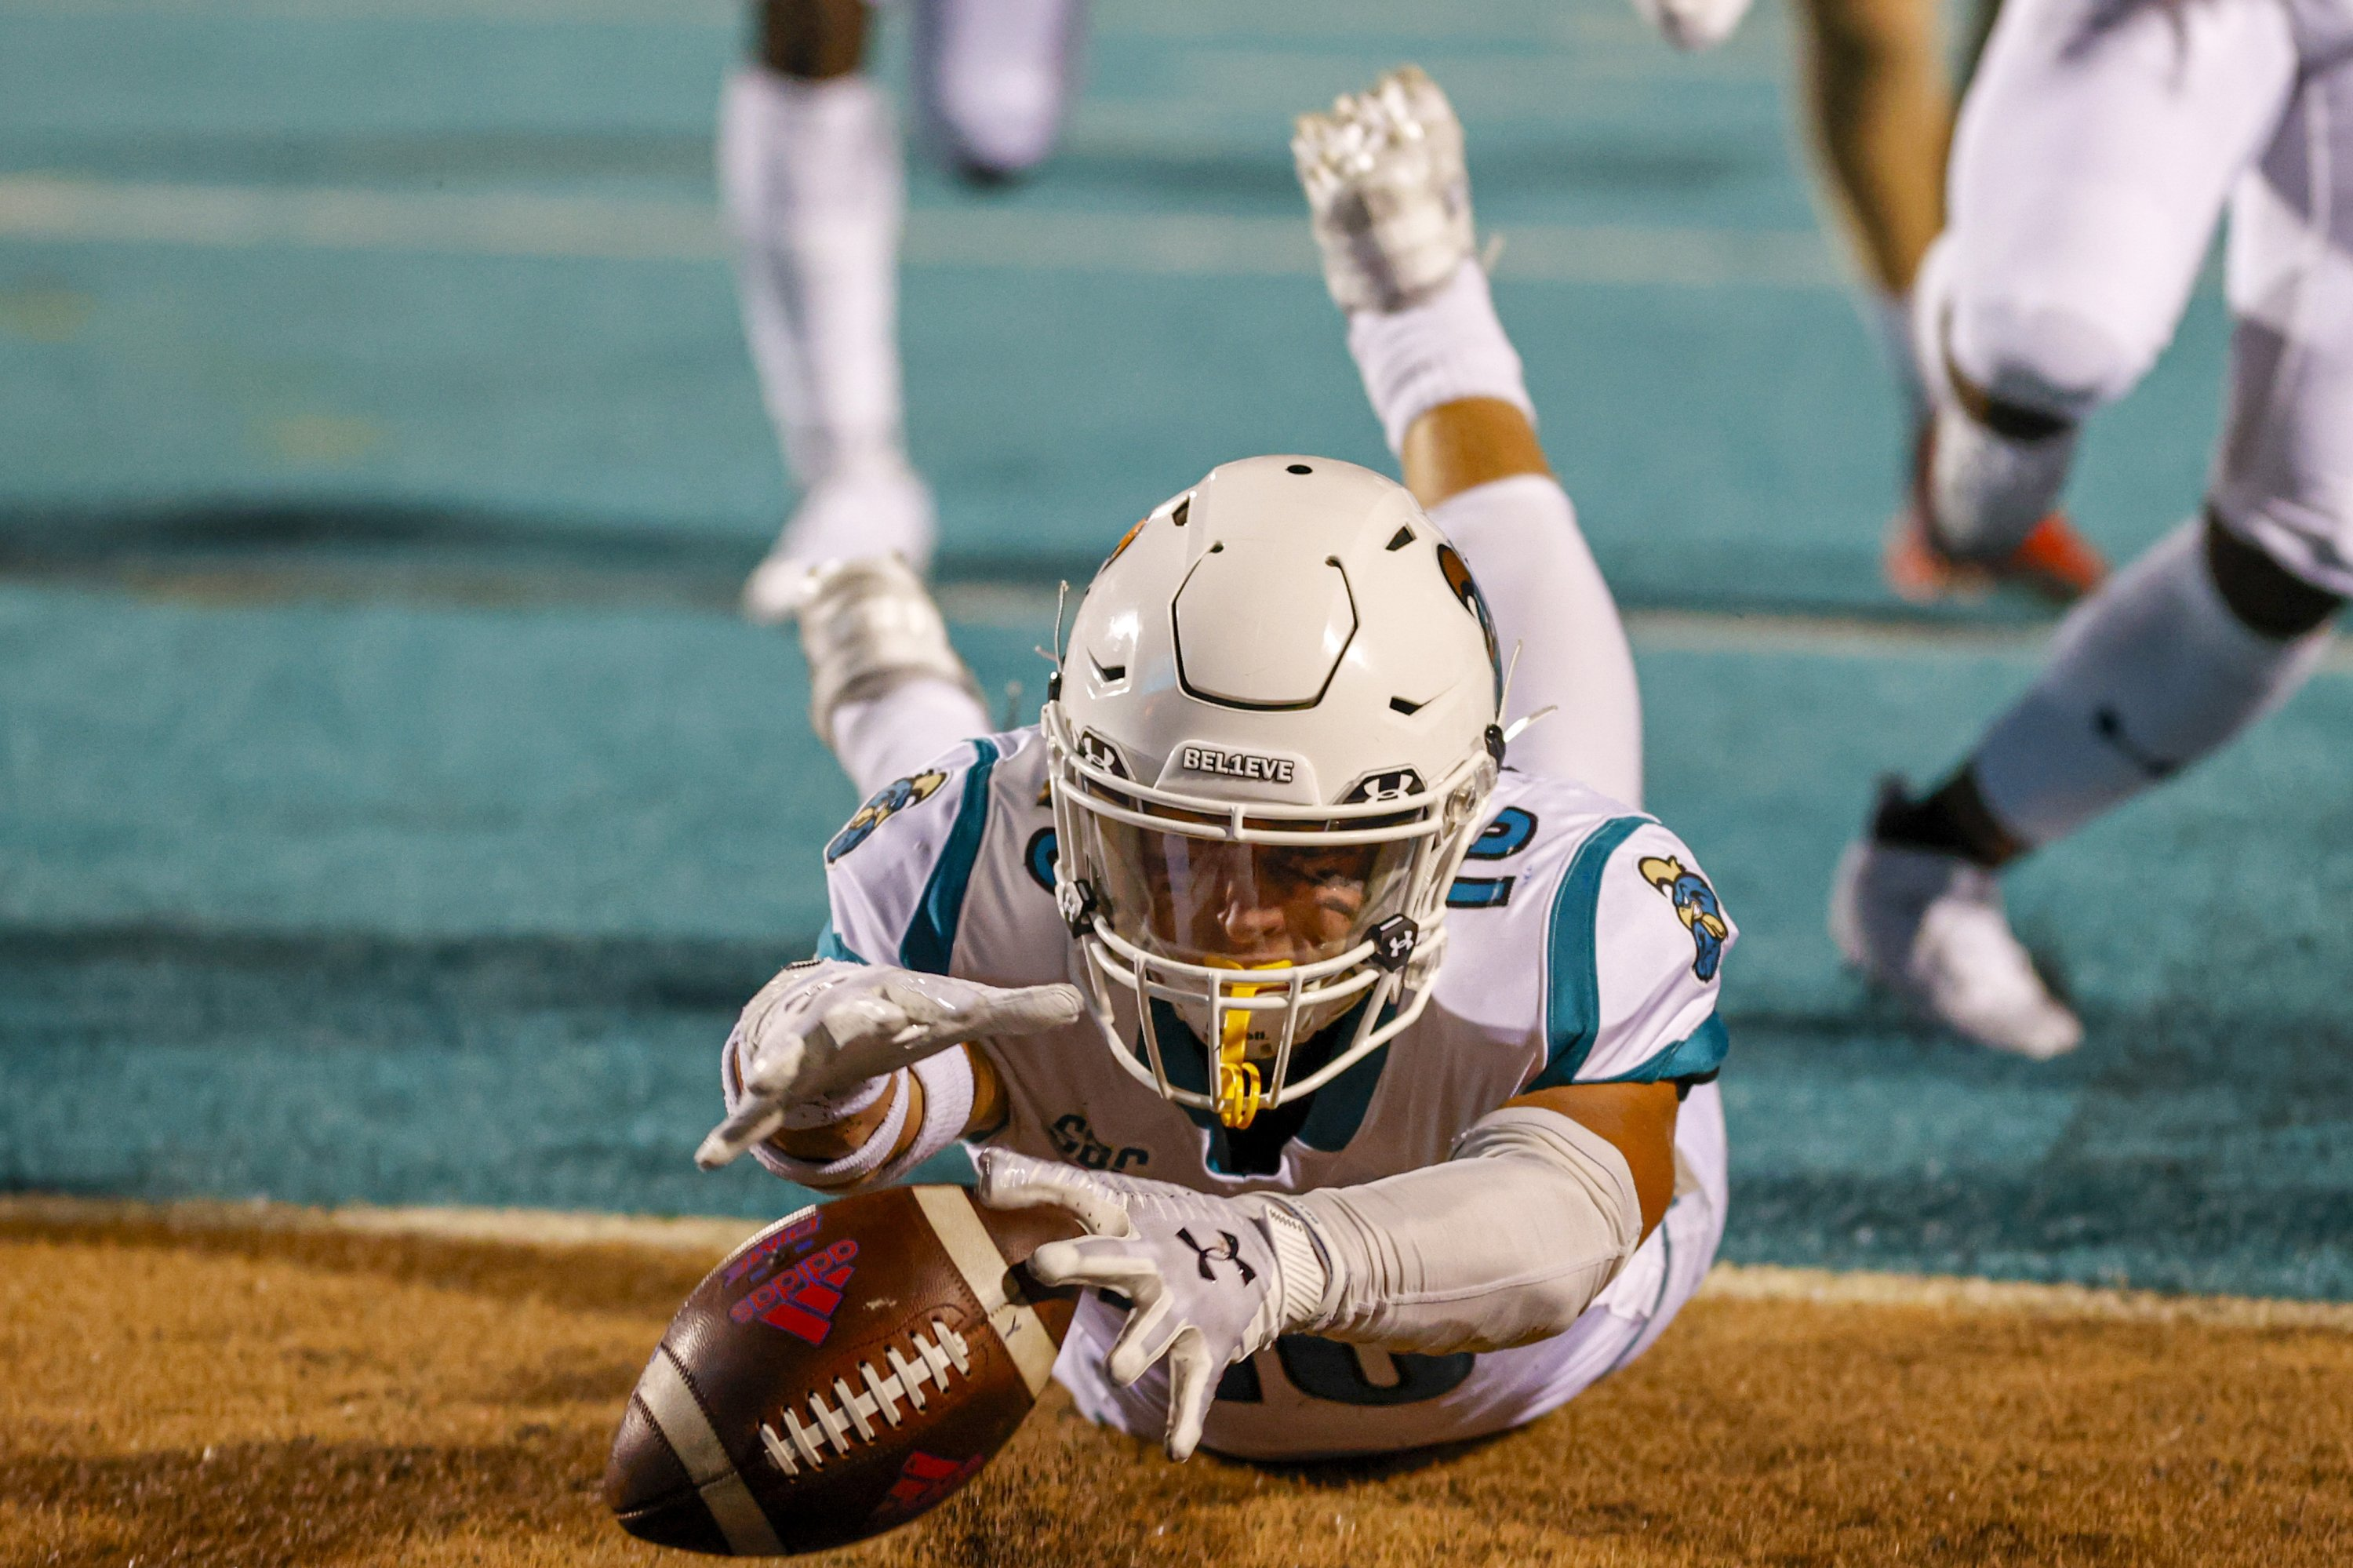 Coastal Carolina safety Alex Spillum dives on the ball in the end zone for a touchdown after he blocked a Kansas punt during the first half of an NCAA college football game in Conway, South Carolina, U.S., Sept. 10, 2021. (AP Photo)